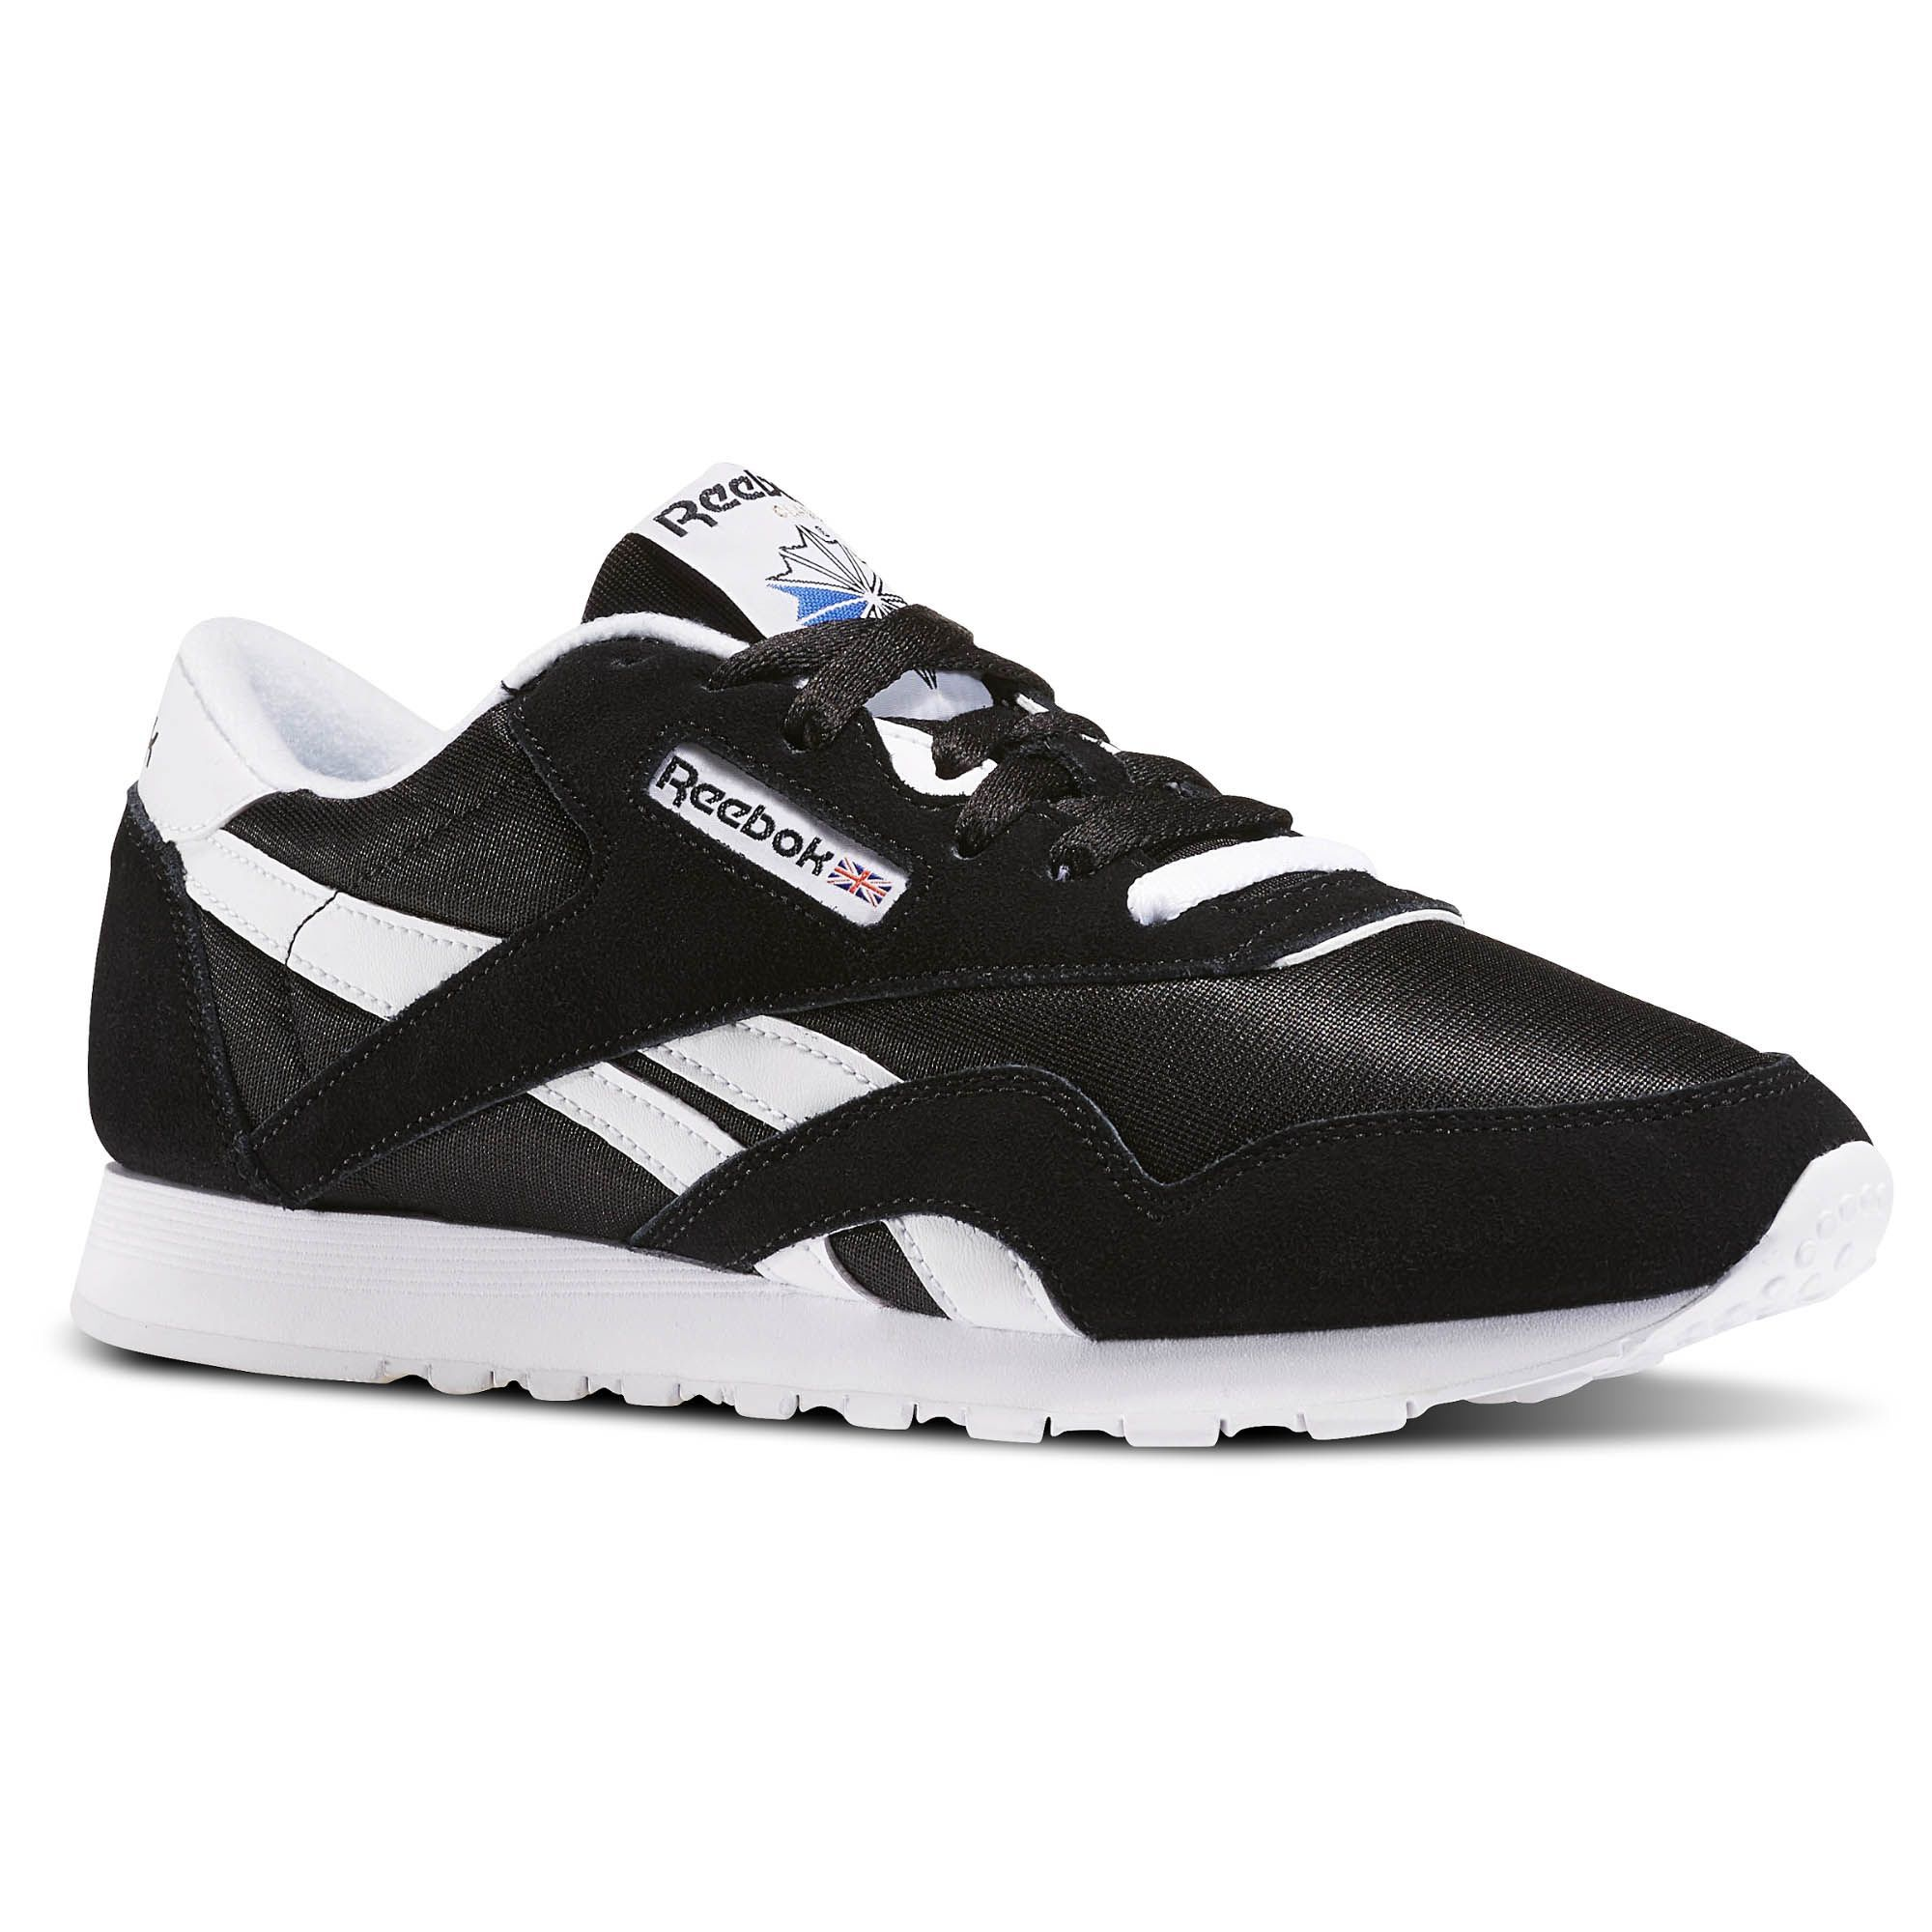 Reebok Shoes Women s Classic Nylon in Black White Size 10.5 ... f857af48a